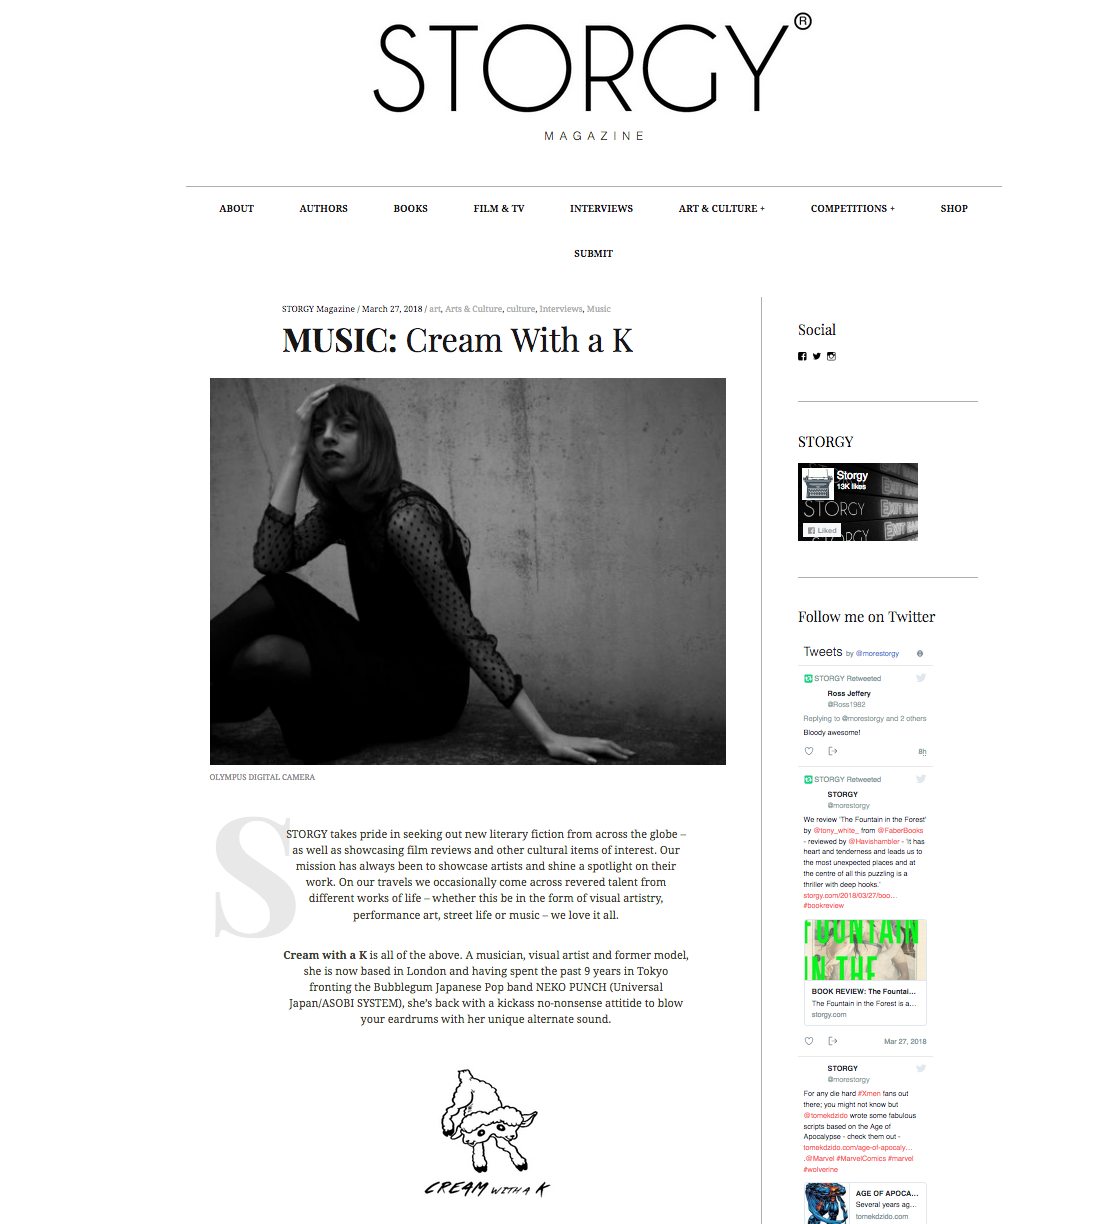 Copy of STORGY MAG